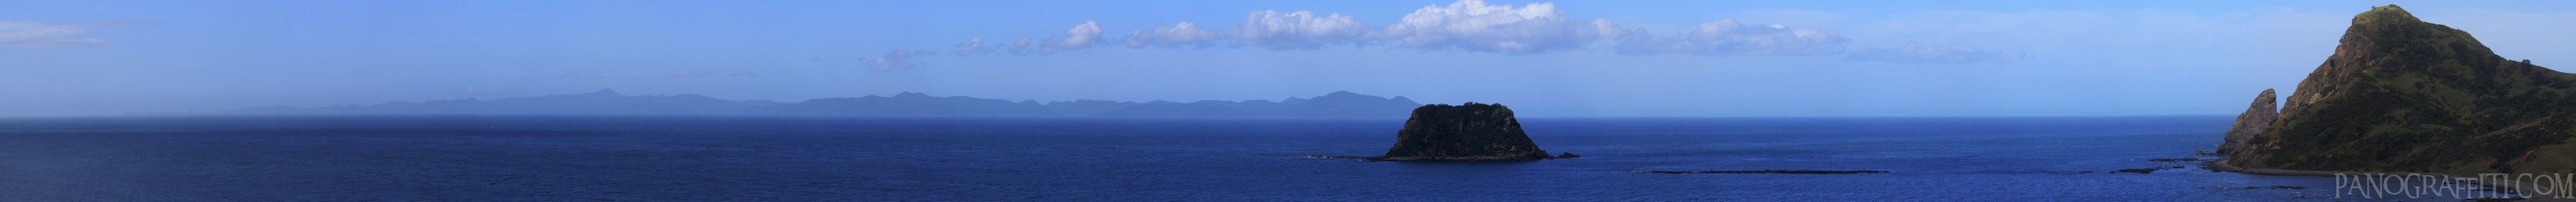 Great Barrier Island From Fletchers Bay - View of Great Barrier Island in the distance